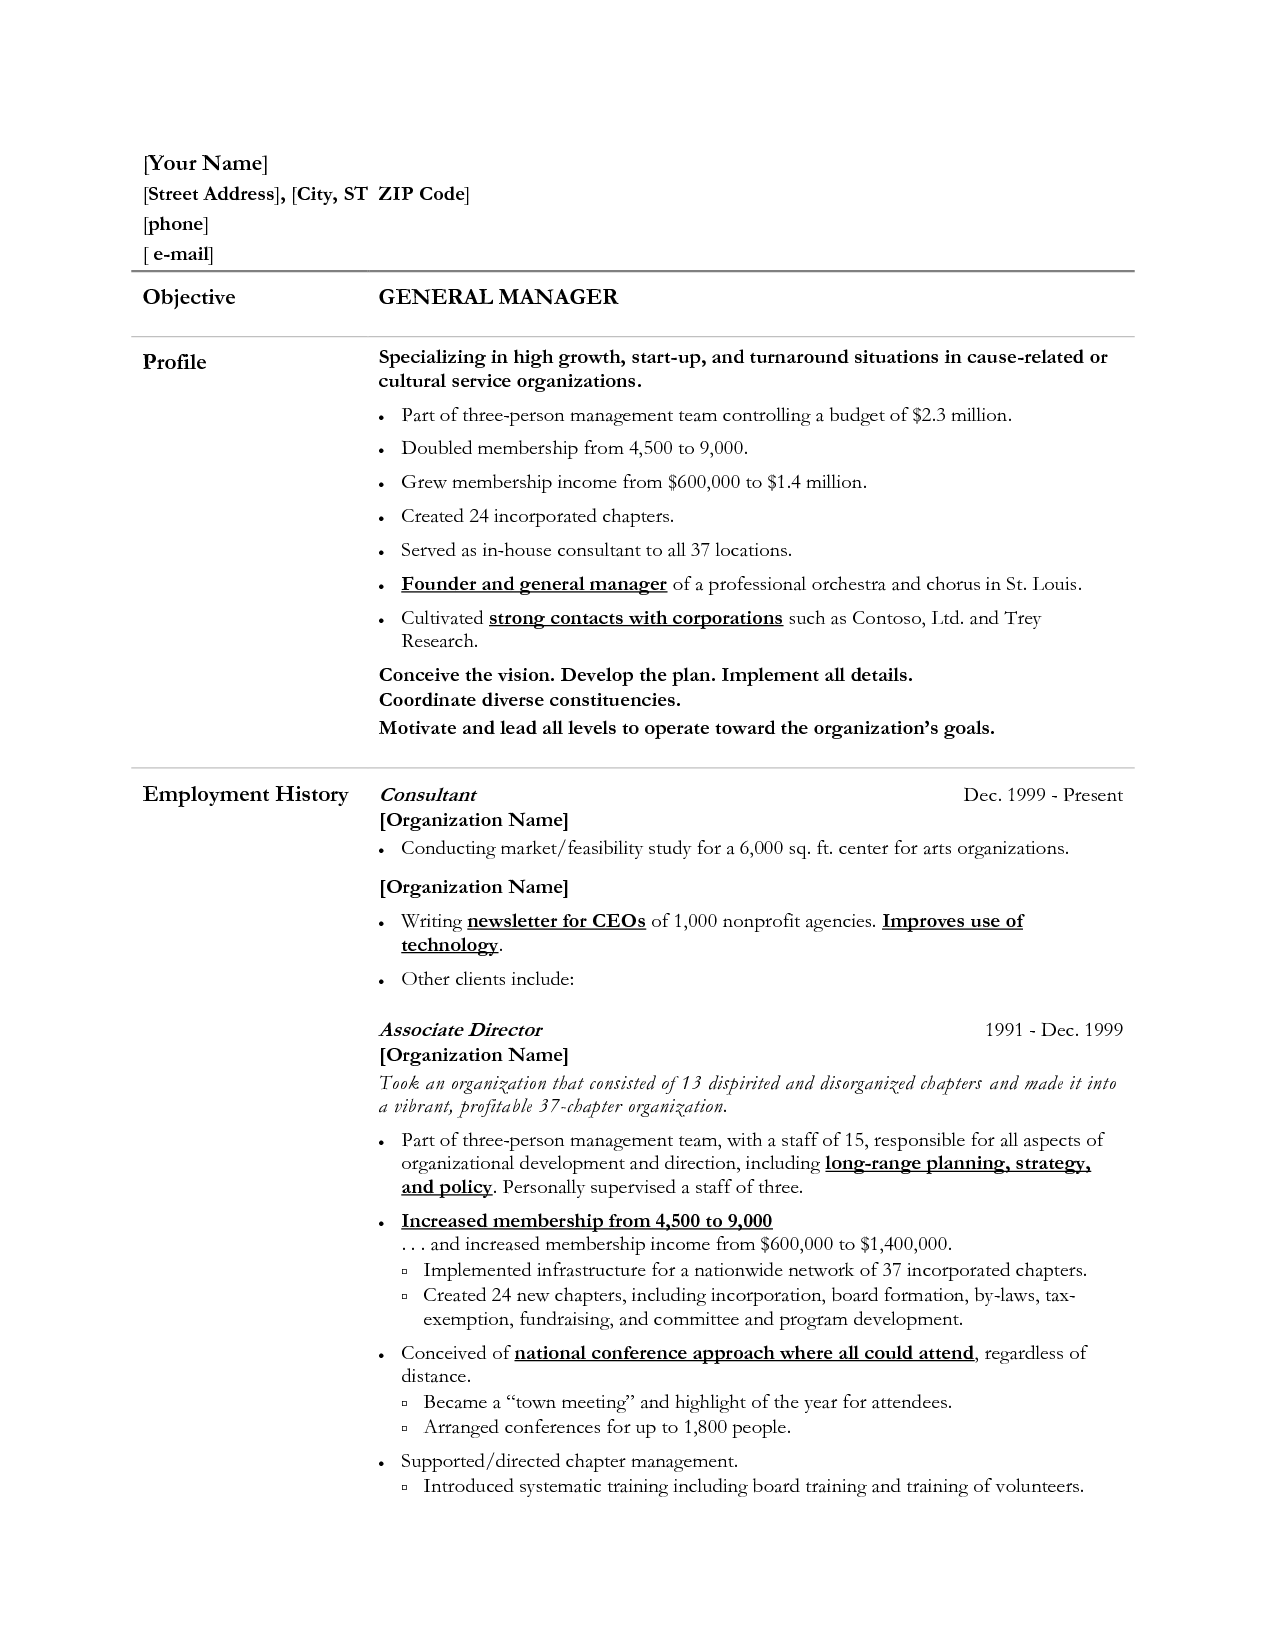 dentist sample resume dentist samples sample resume objective